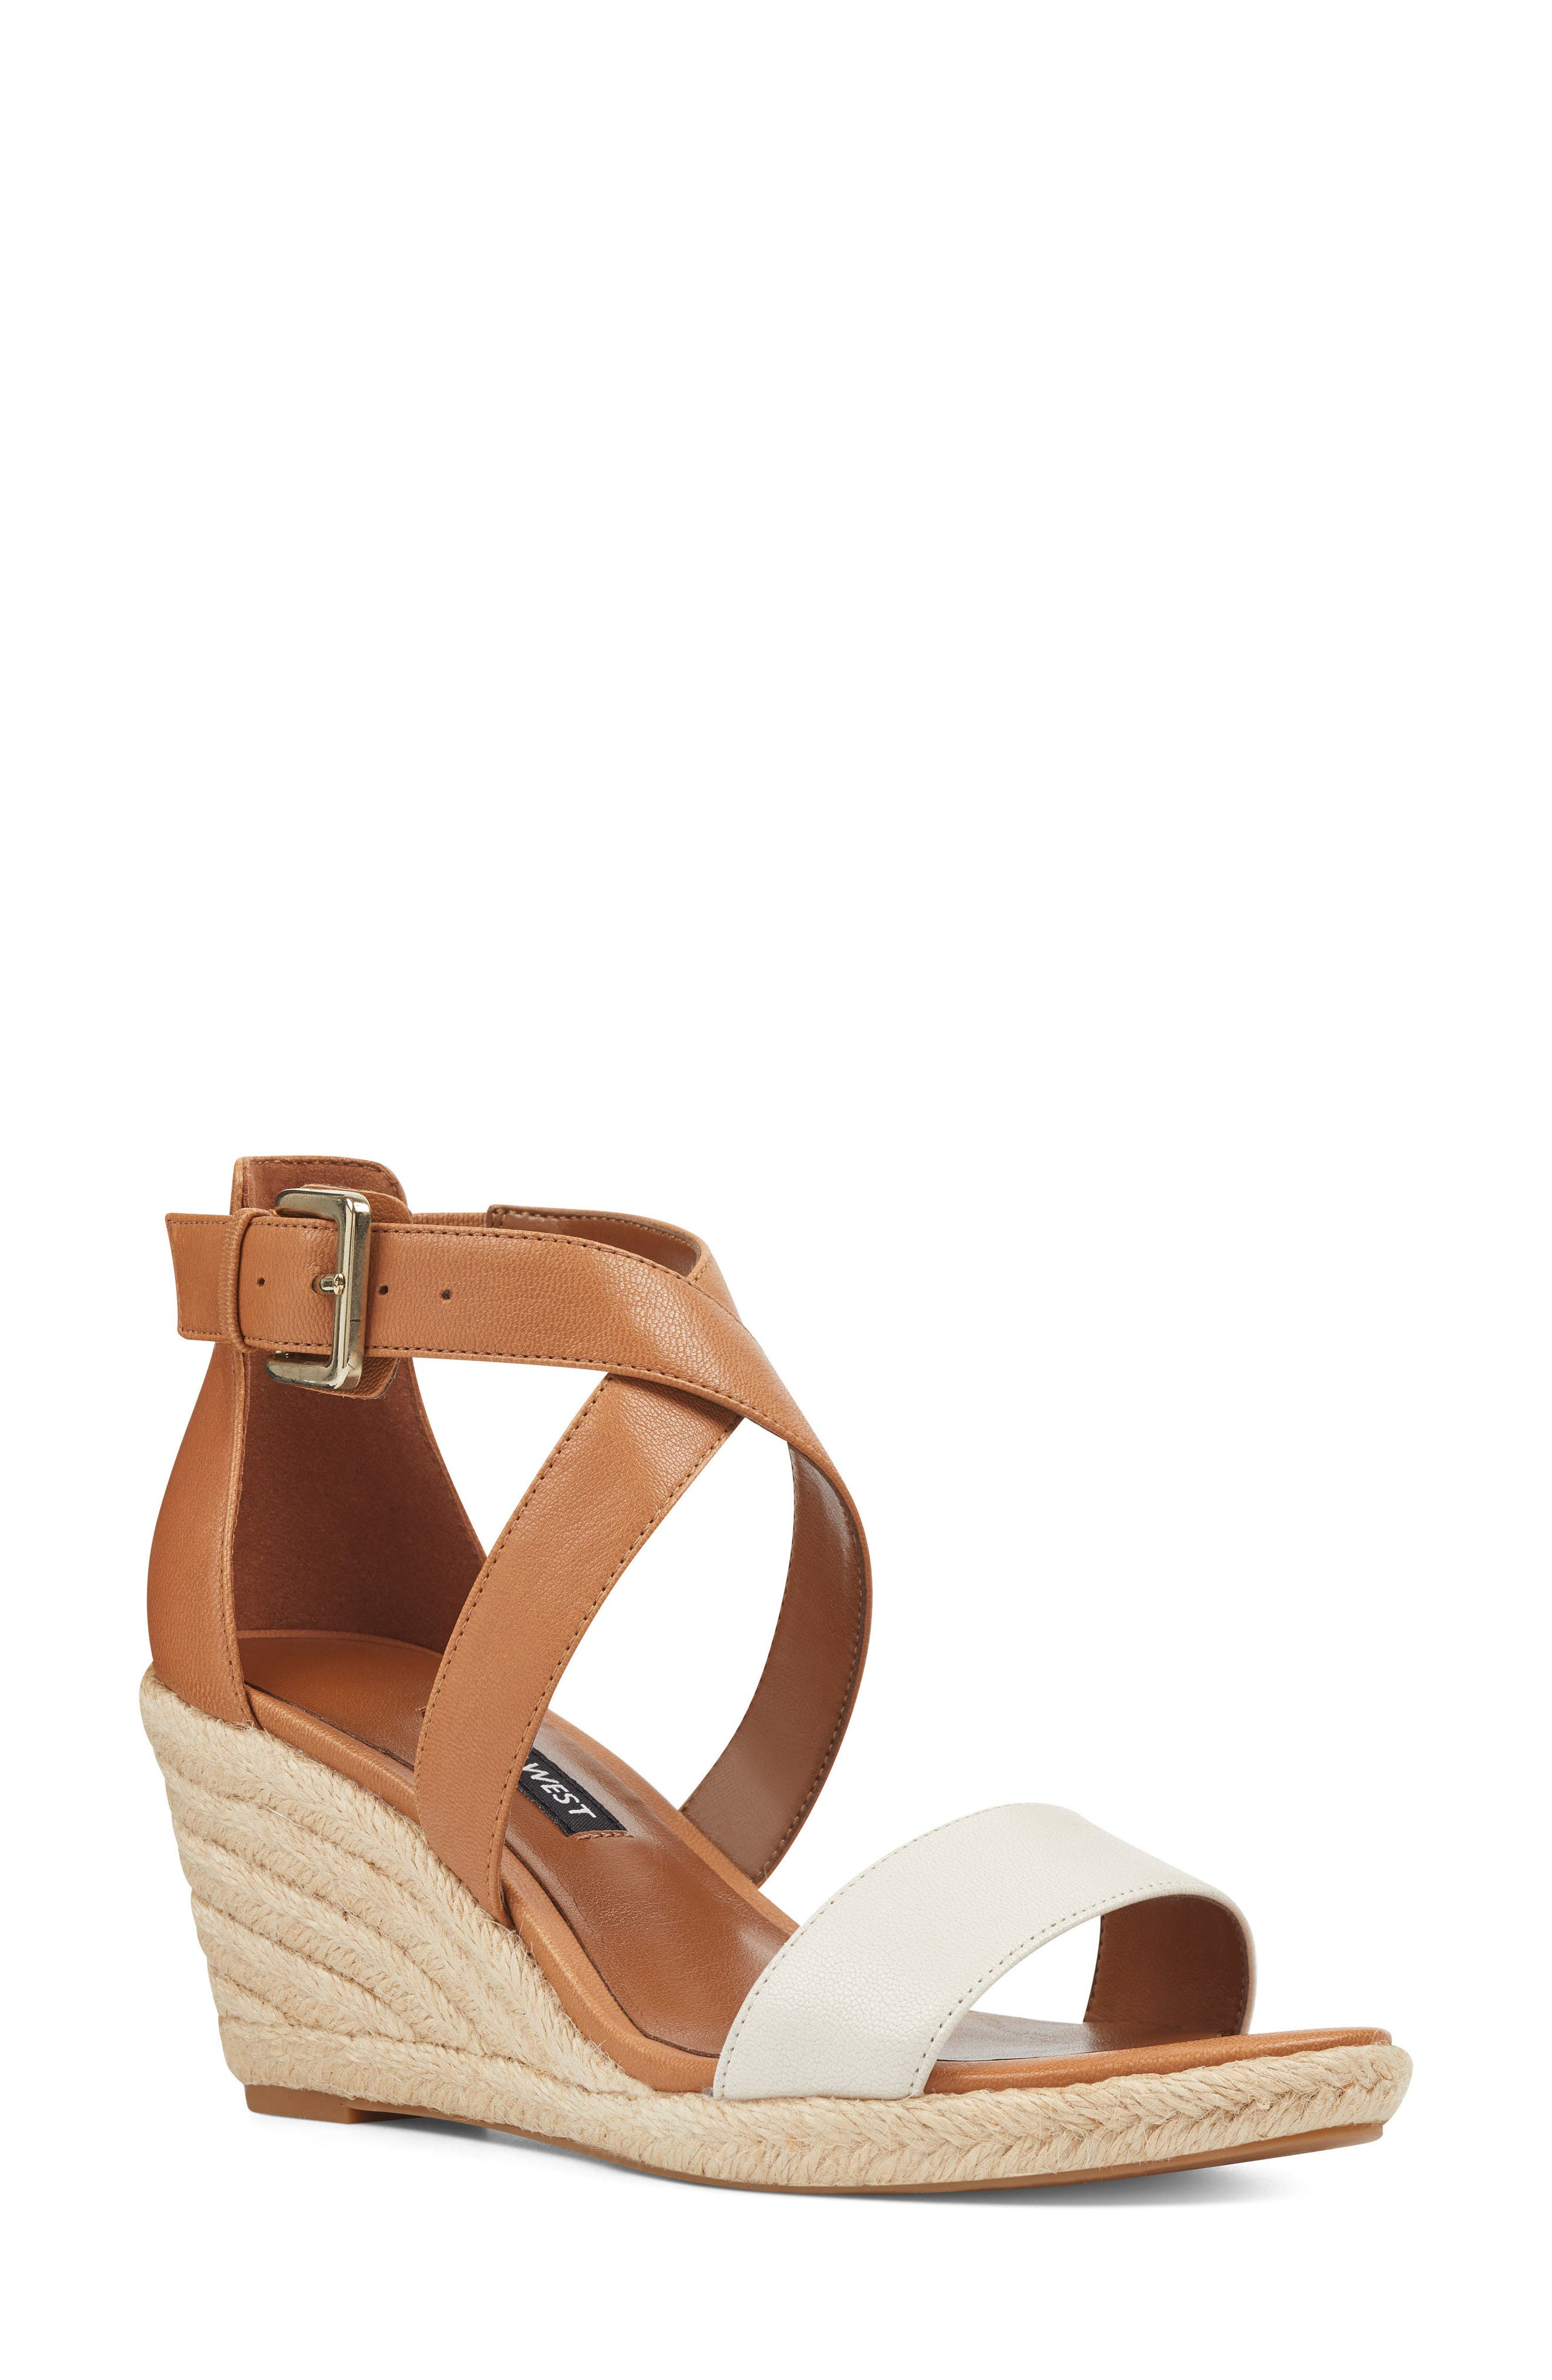 Jorjapeach Espadrille Wedge Sandal,                         Main,                         color, White Leather